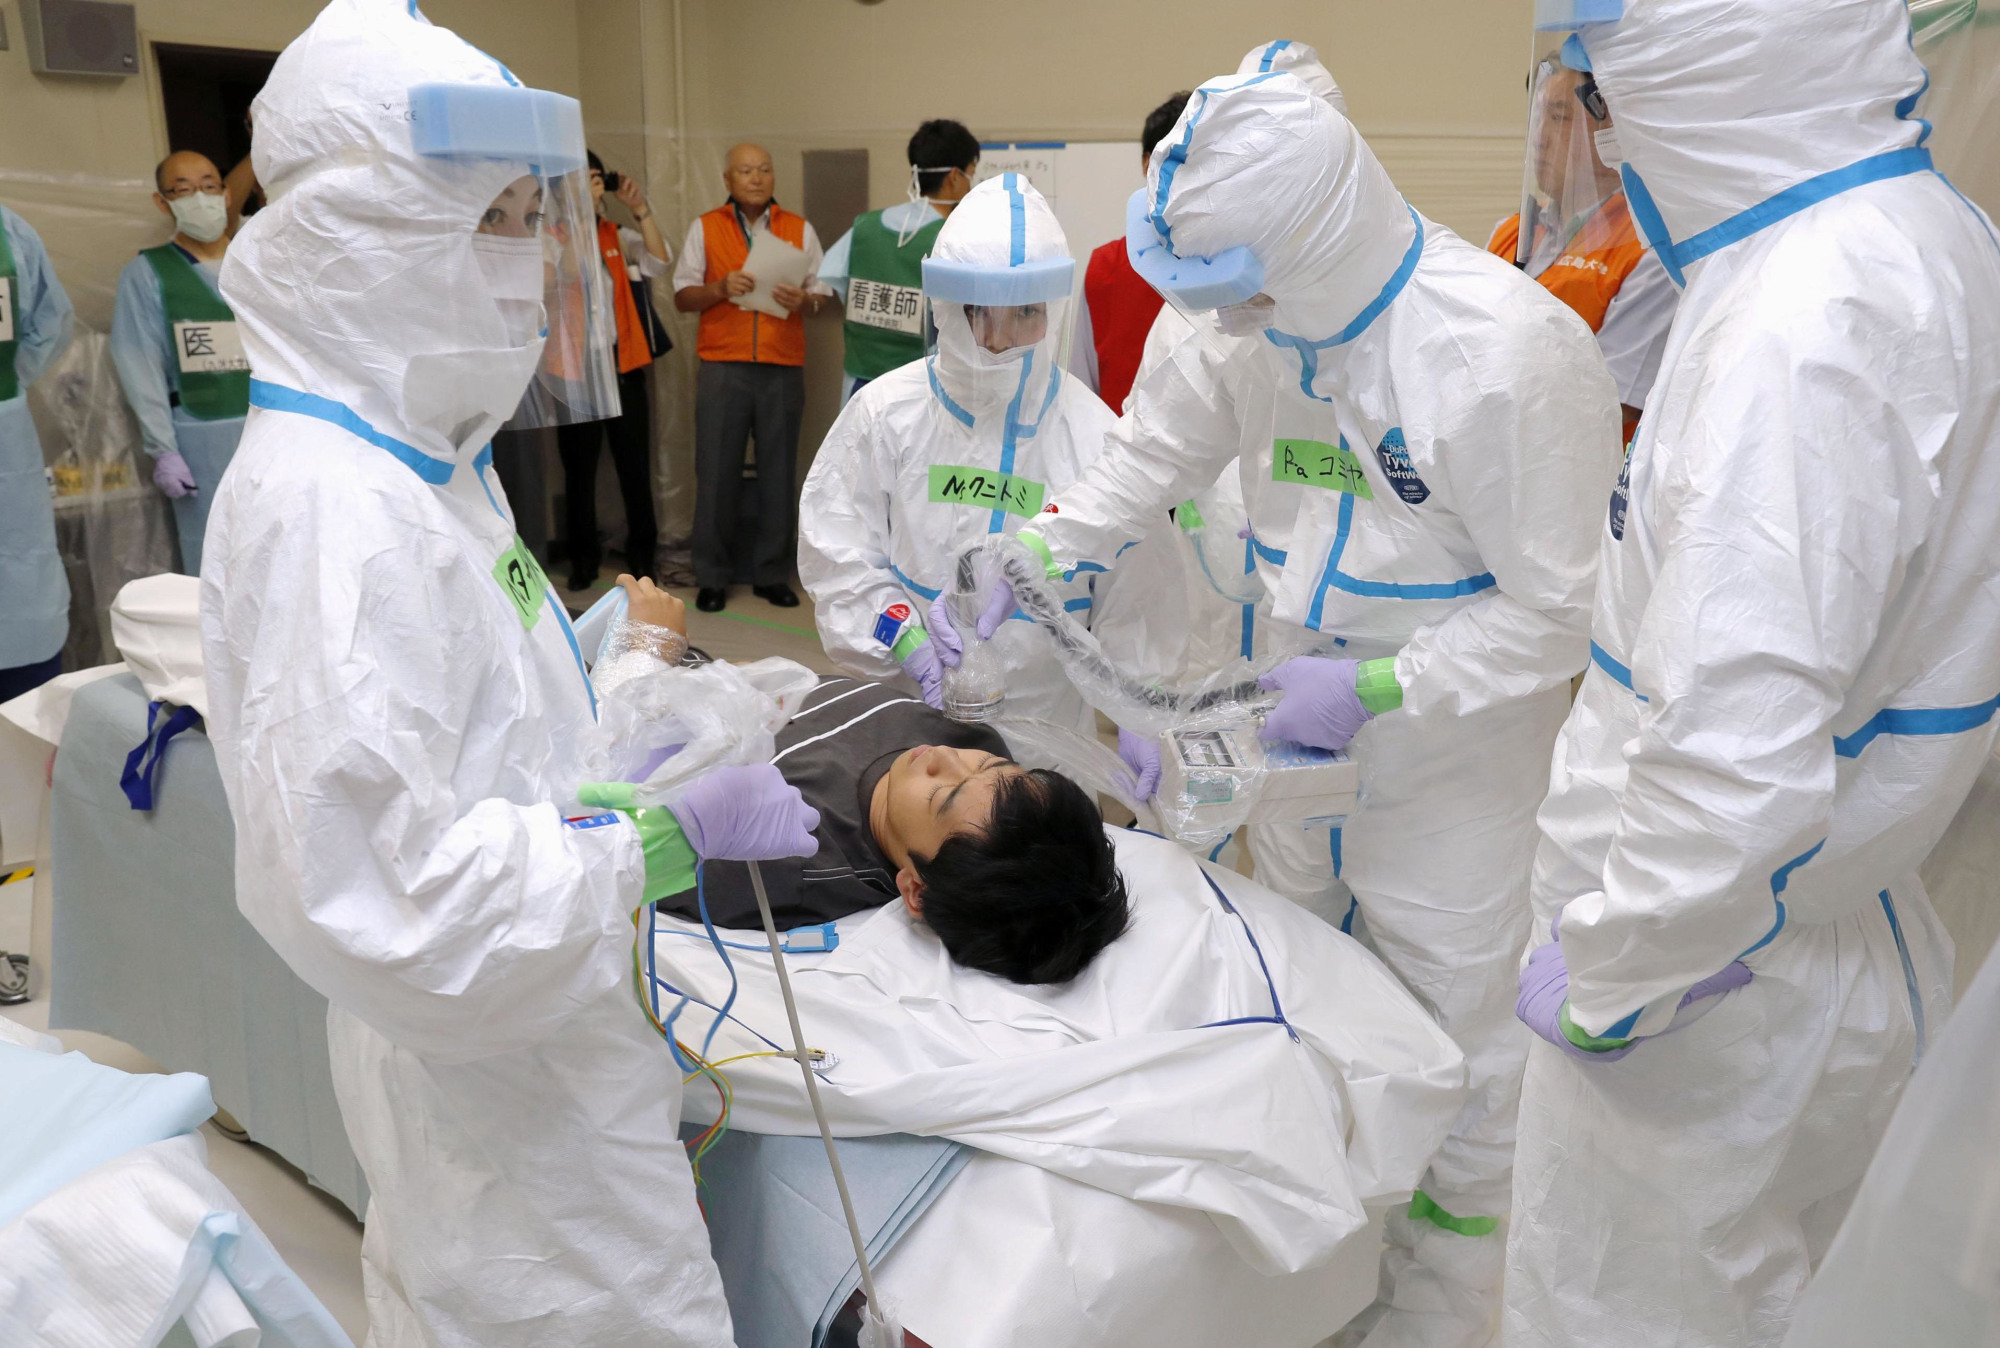 Doctors and a person pretending to be a radiation-contaminated patient participate in a nuclear drill at Kyushu University Hospital in Fukuoka on Sunday. The scenario assumes that the Genkai nuclear plant in Genkai, Saga Prefecture, is facing a core meltdown. | KYODO